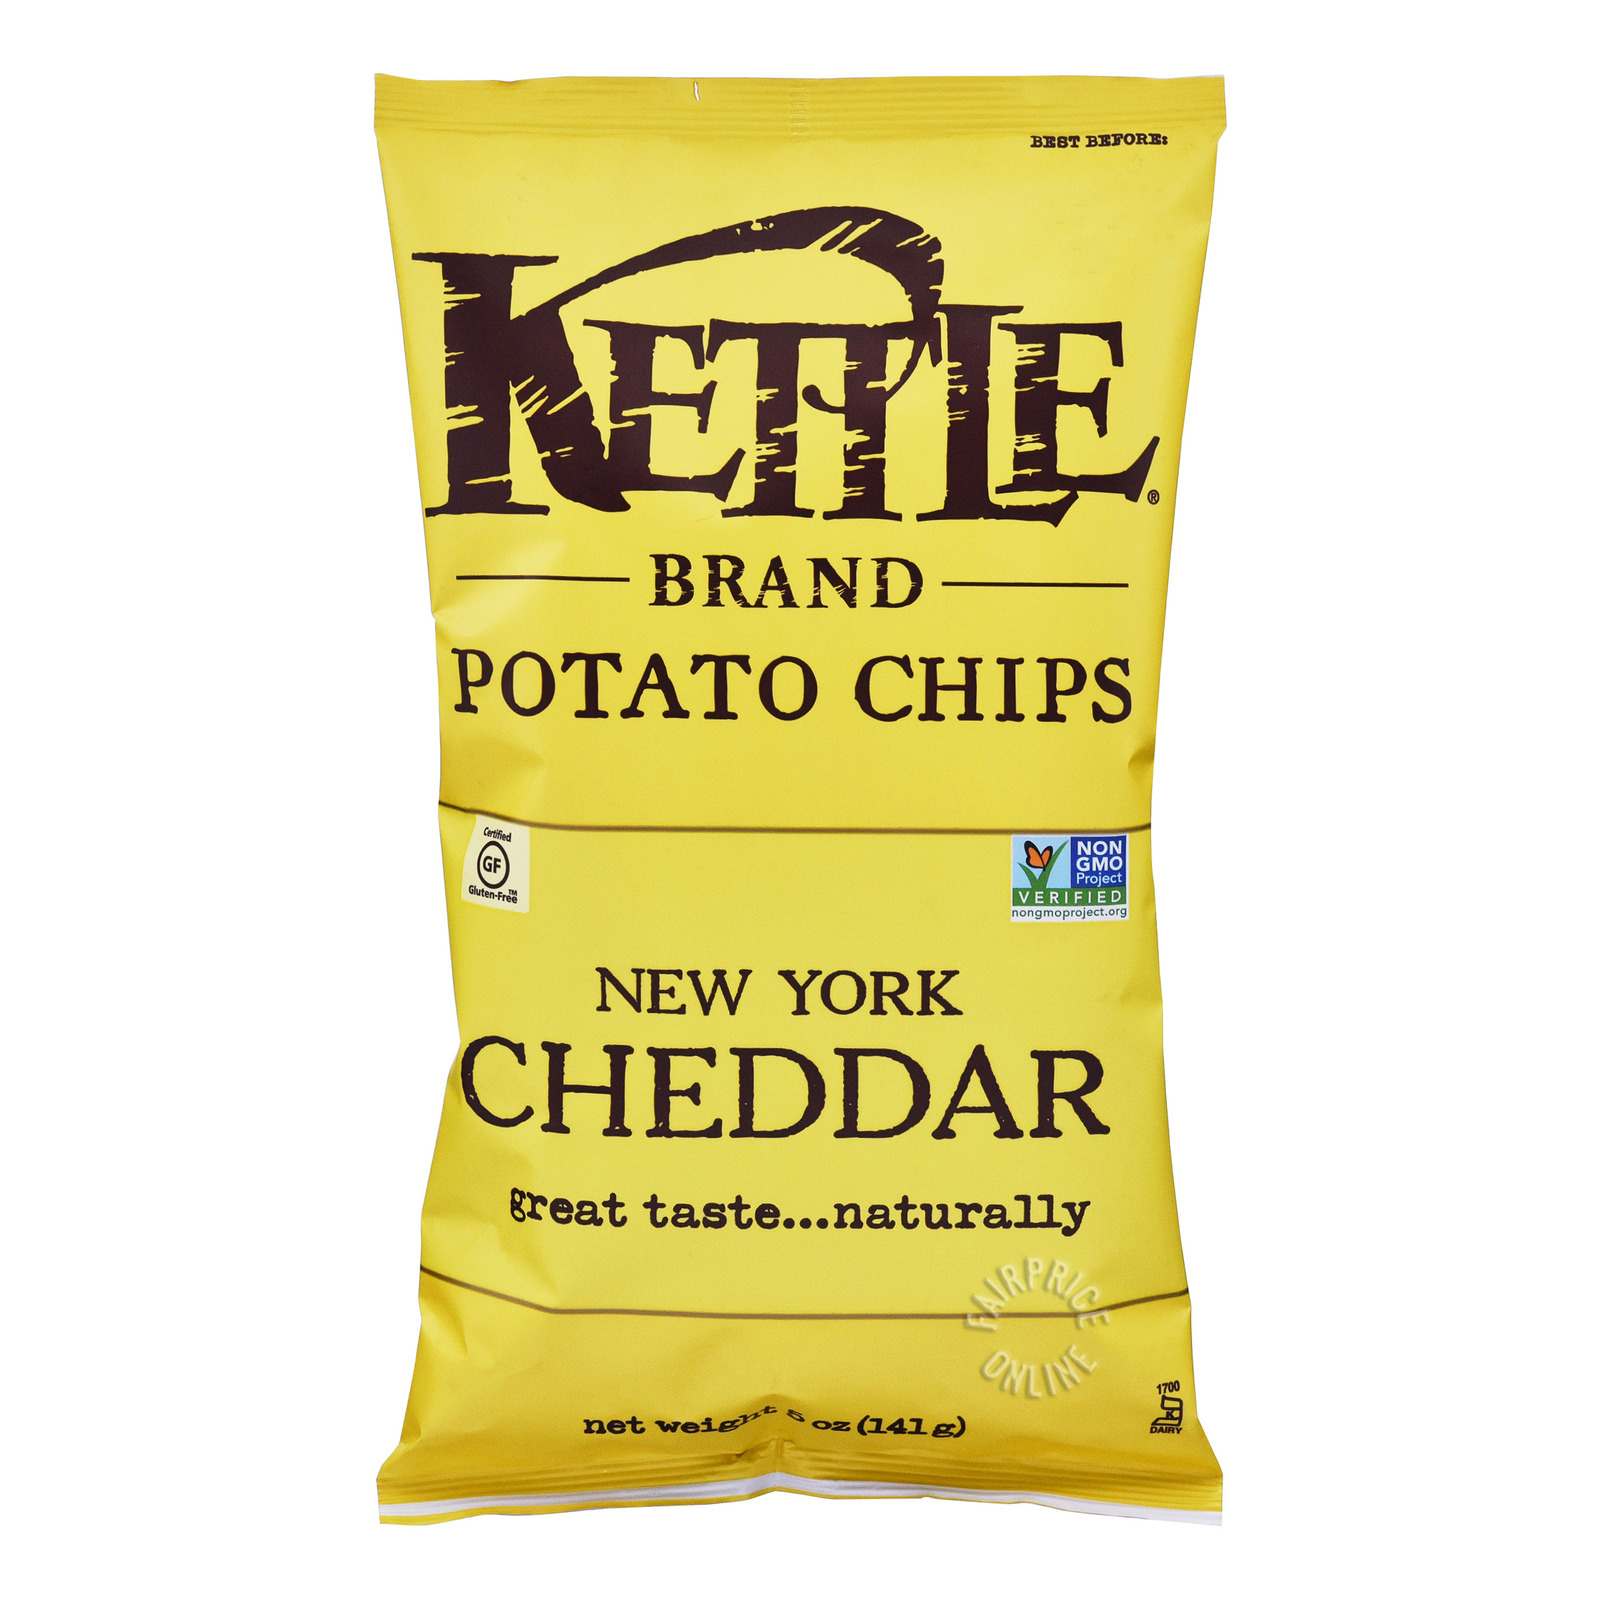 Kettle Brand Potato Chips - New York Cheddar